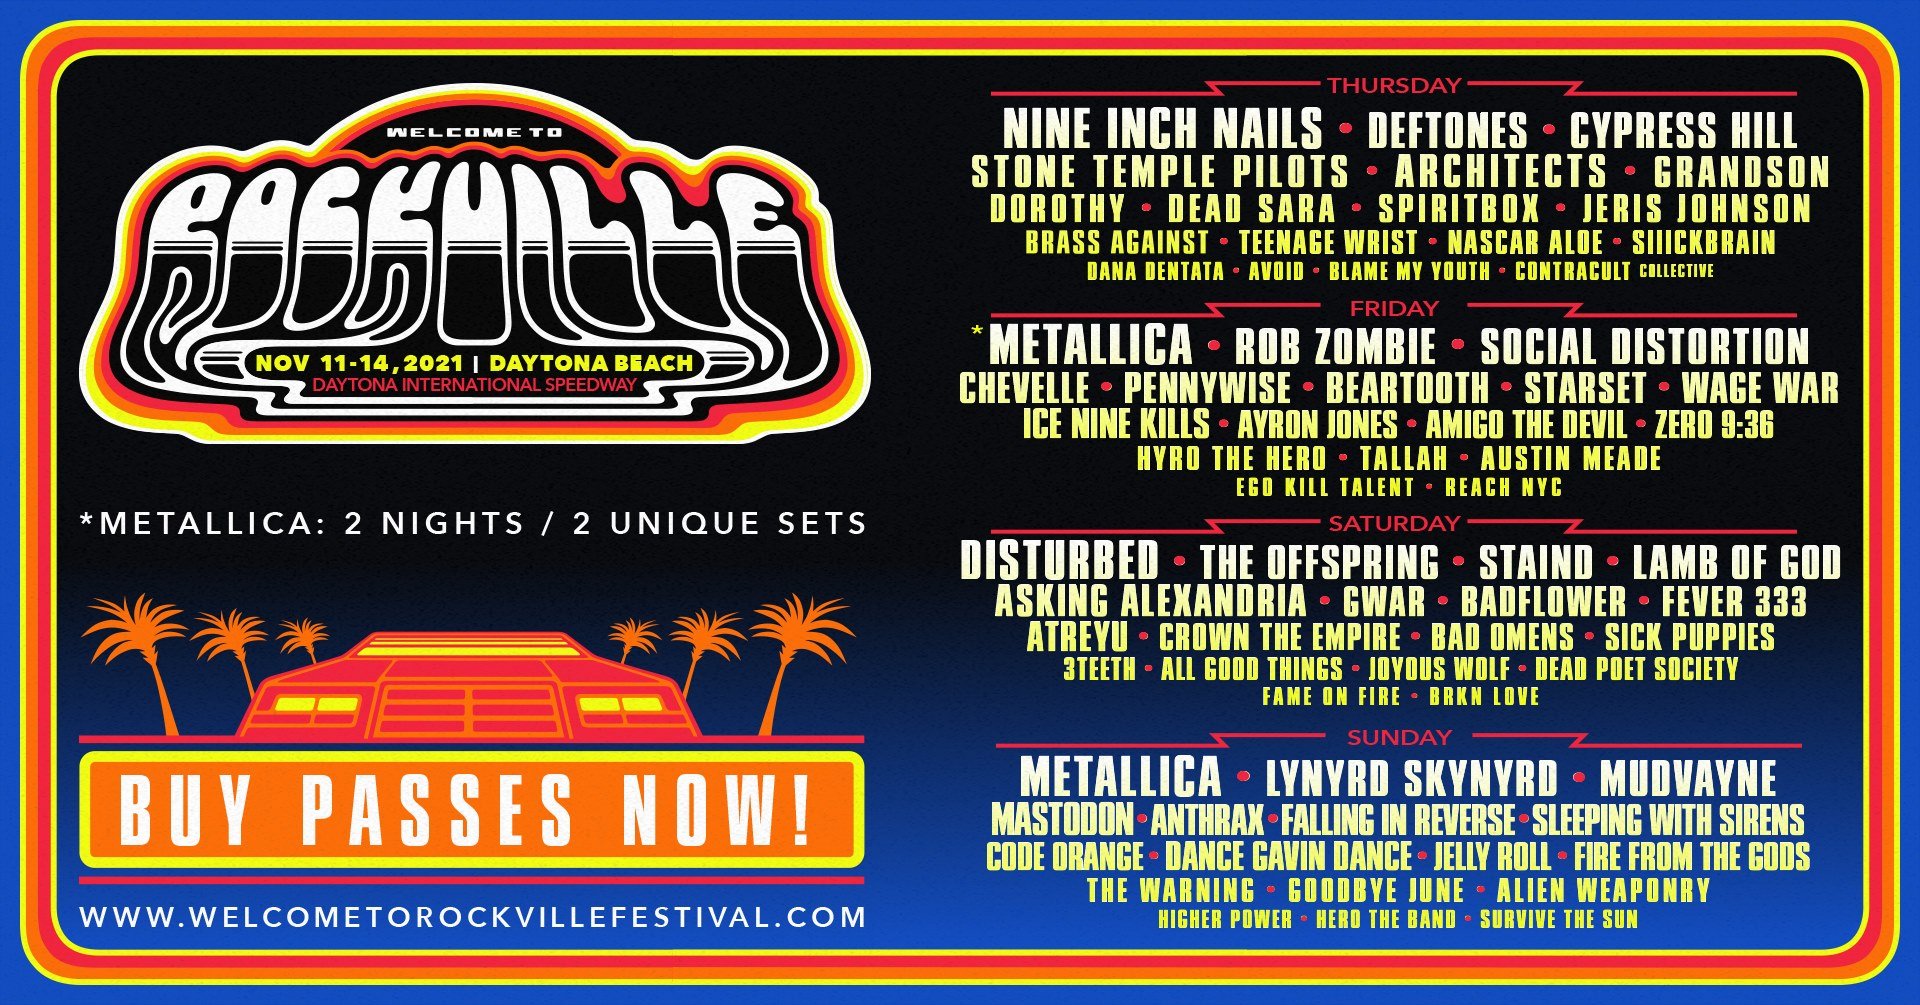 Welcome to Rockville 2021 Florida Festivals